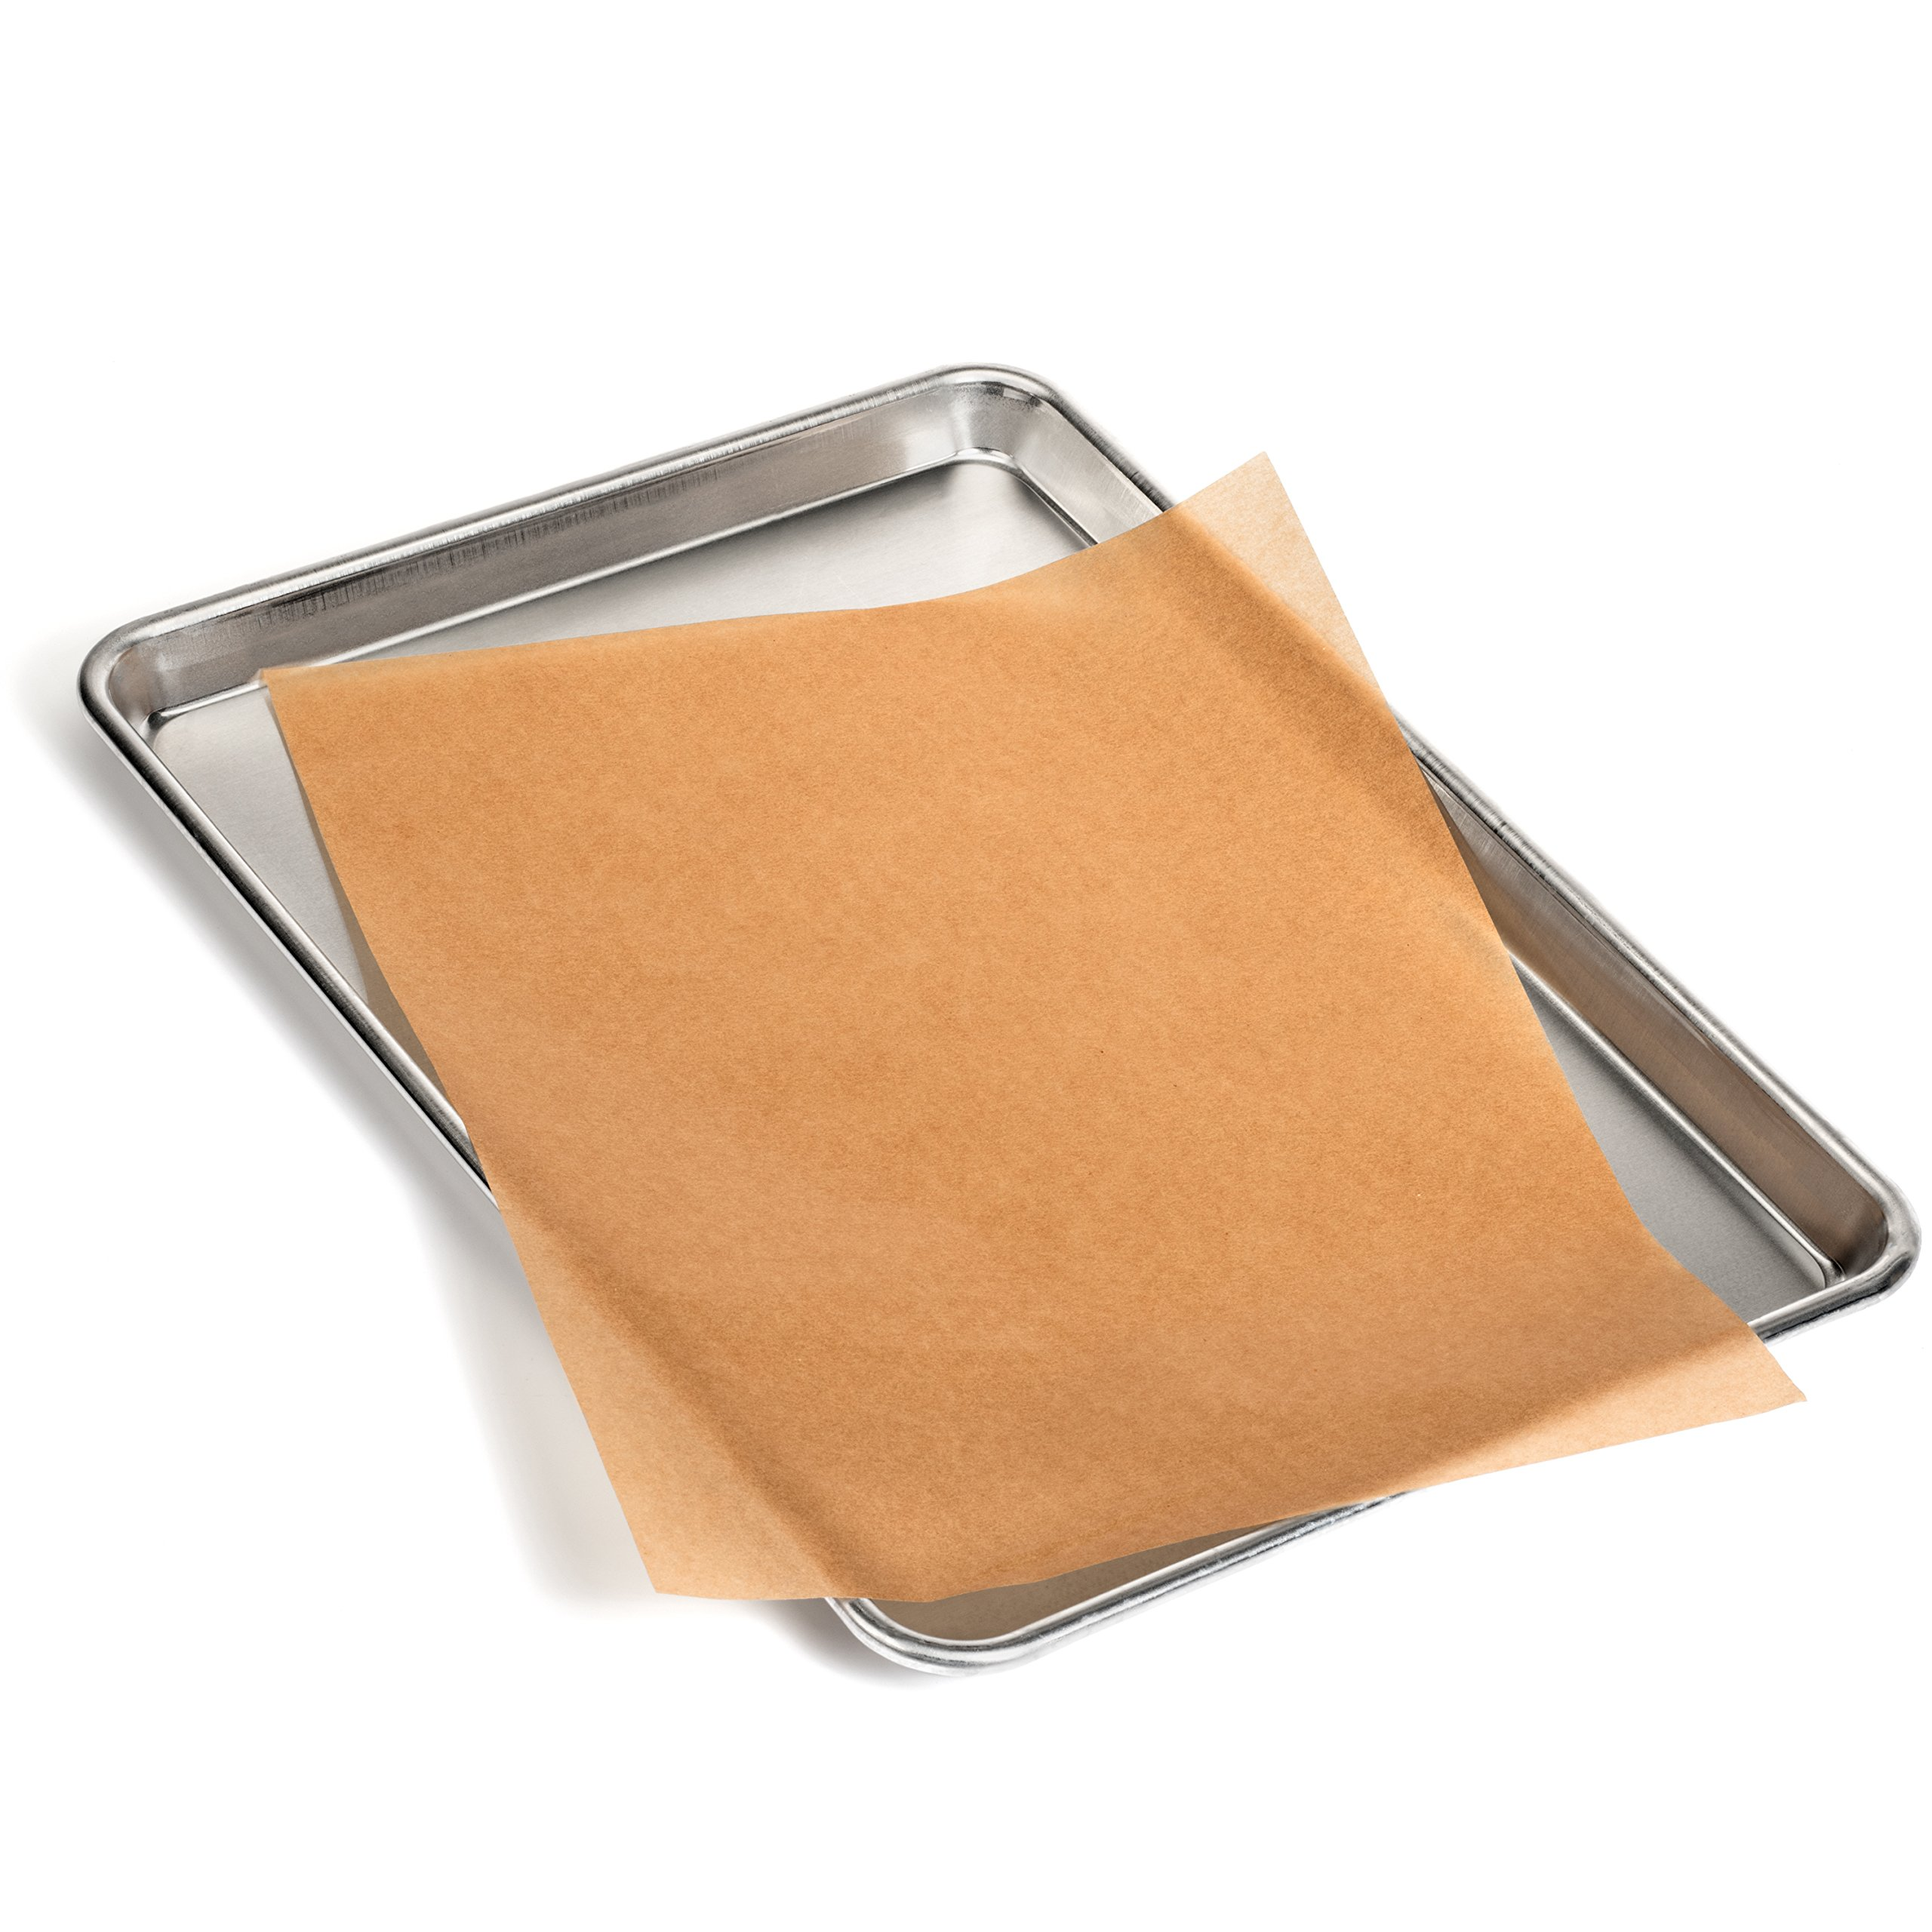 Zenlogy 12x16 (200 Pcs) Unbleached Parchment Paper Baking Sheets - Exact Fit for Your Half Sheet Pans - Perforated Box for Easy Storage - Non Toxic - Greaseproof by Zenlogy (Image #4)